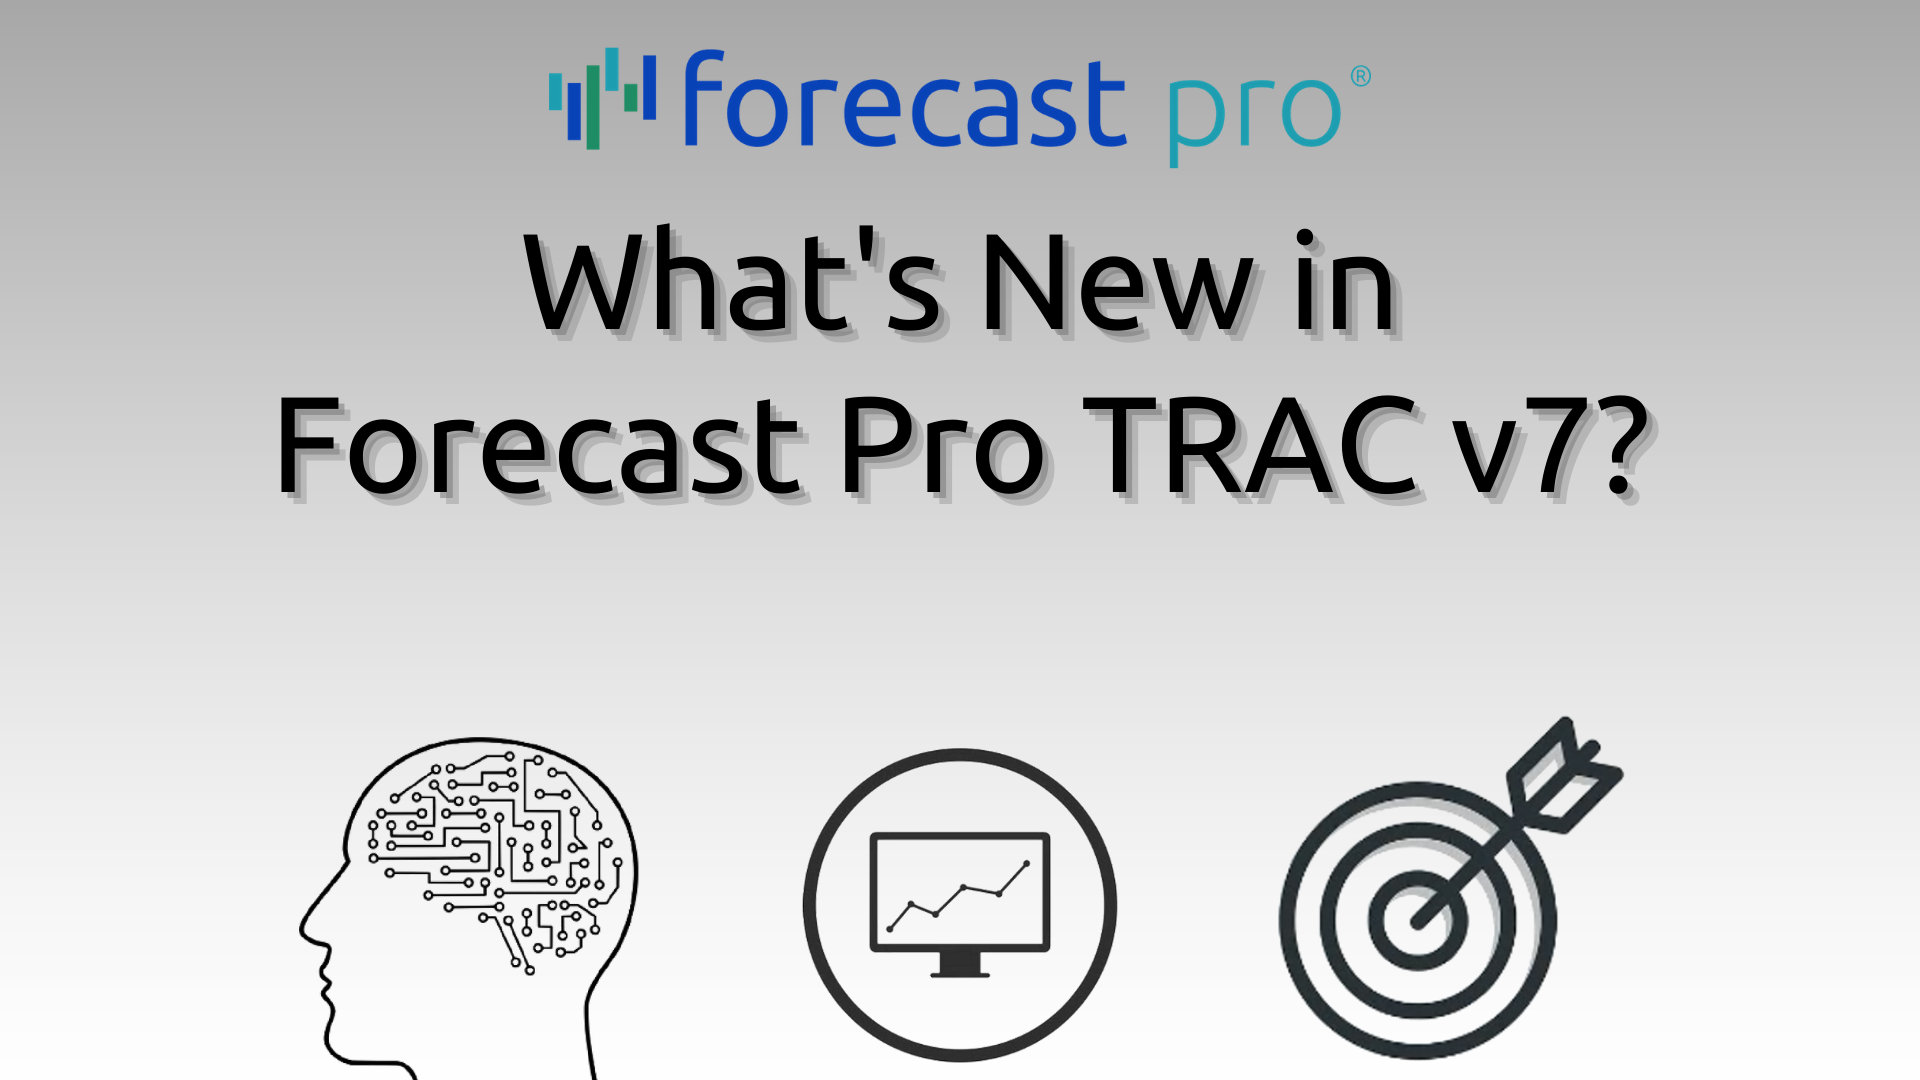 What's New in Forecast Pro TRAC v7 webinar image (Machine learning brain, reporting screen, target)